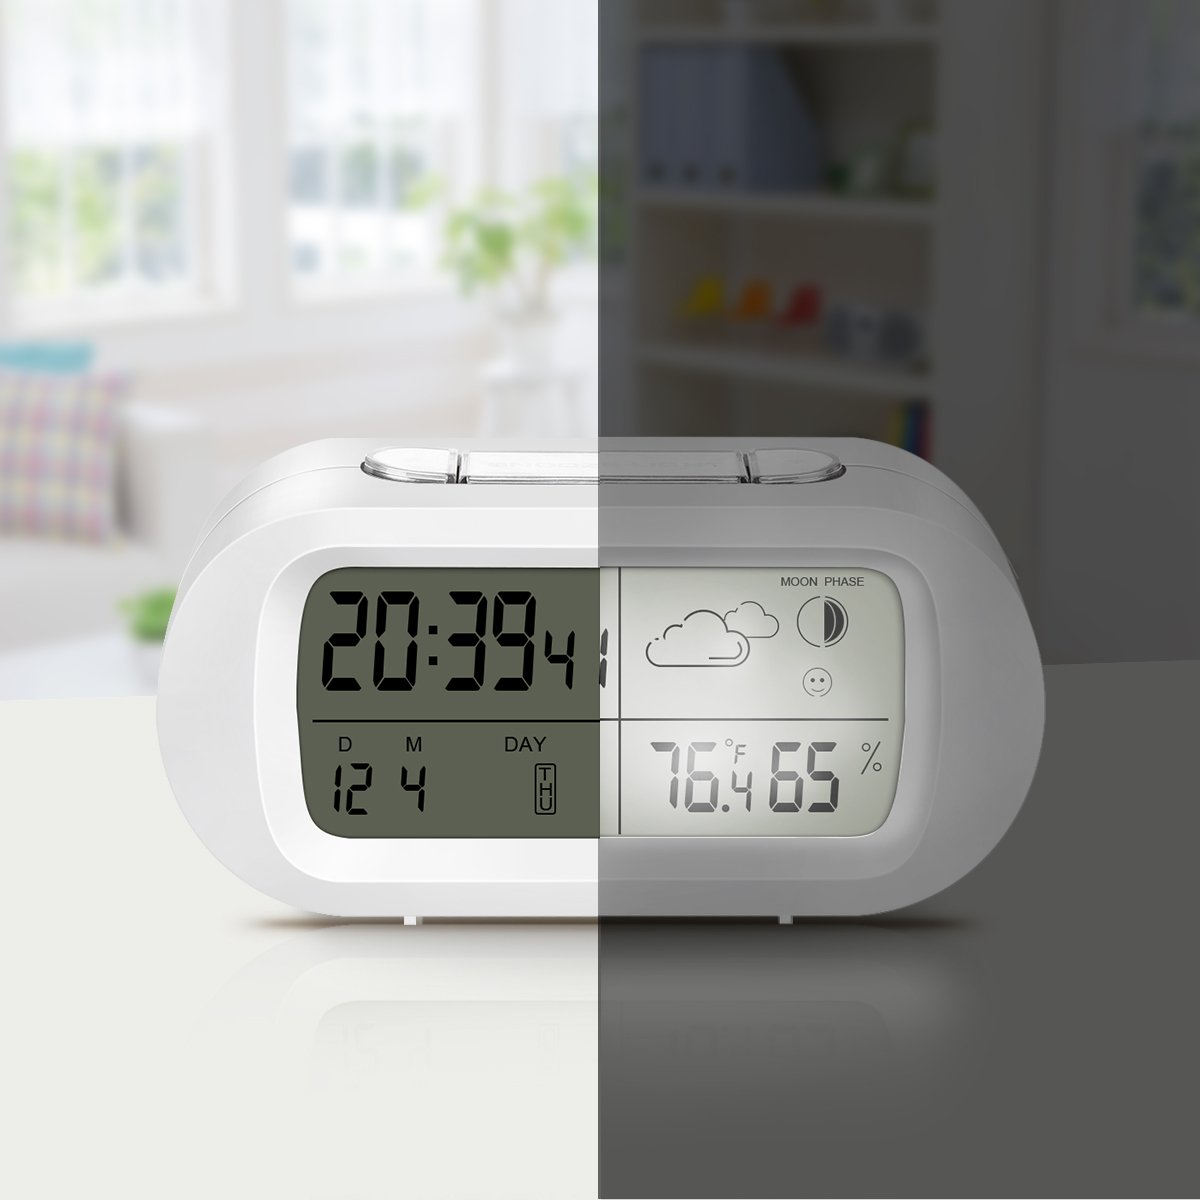 Snooze Desktop Weather Clocks Sleep Timer for Kids Office Bedroom Dormitory White EIVOTOR Temperature Hygrometer Monitor with LCD Back-light Day Date and Moon Phase Digital Alarm Clock